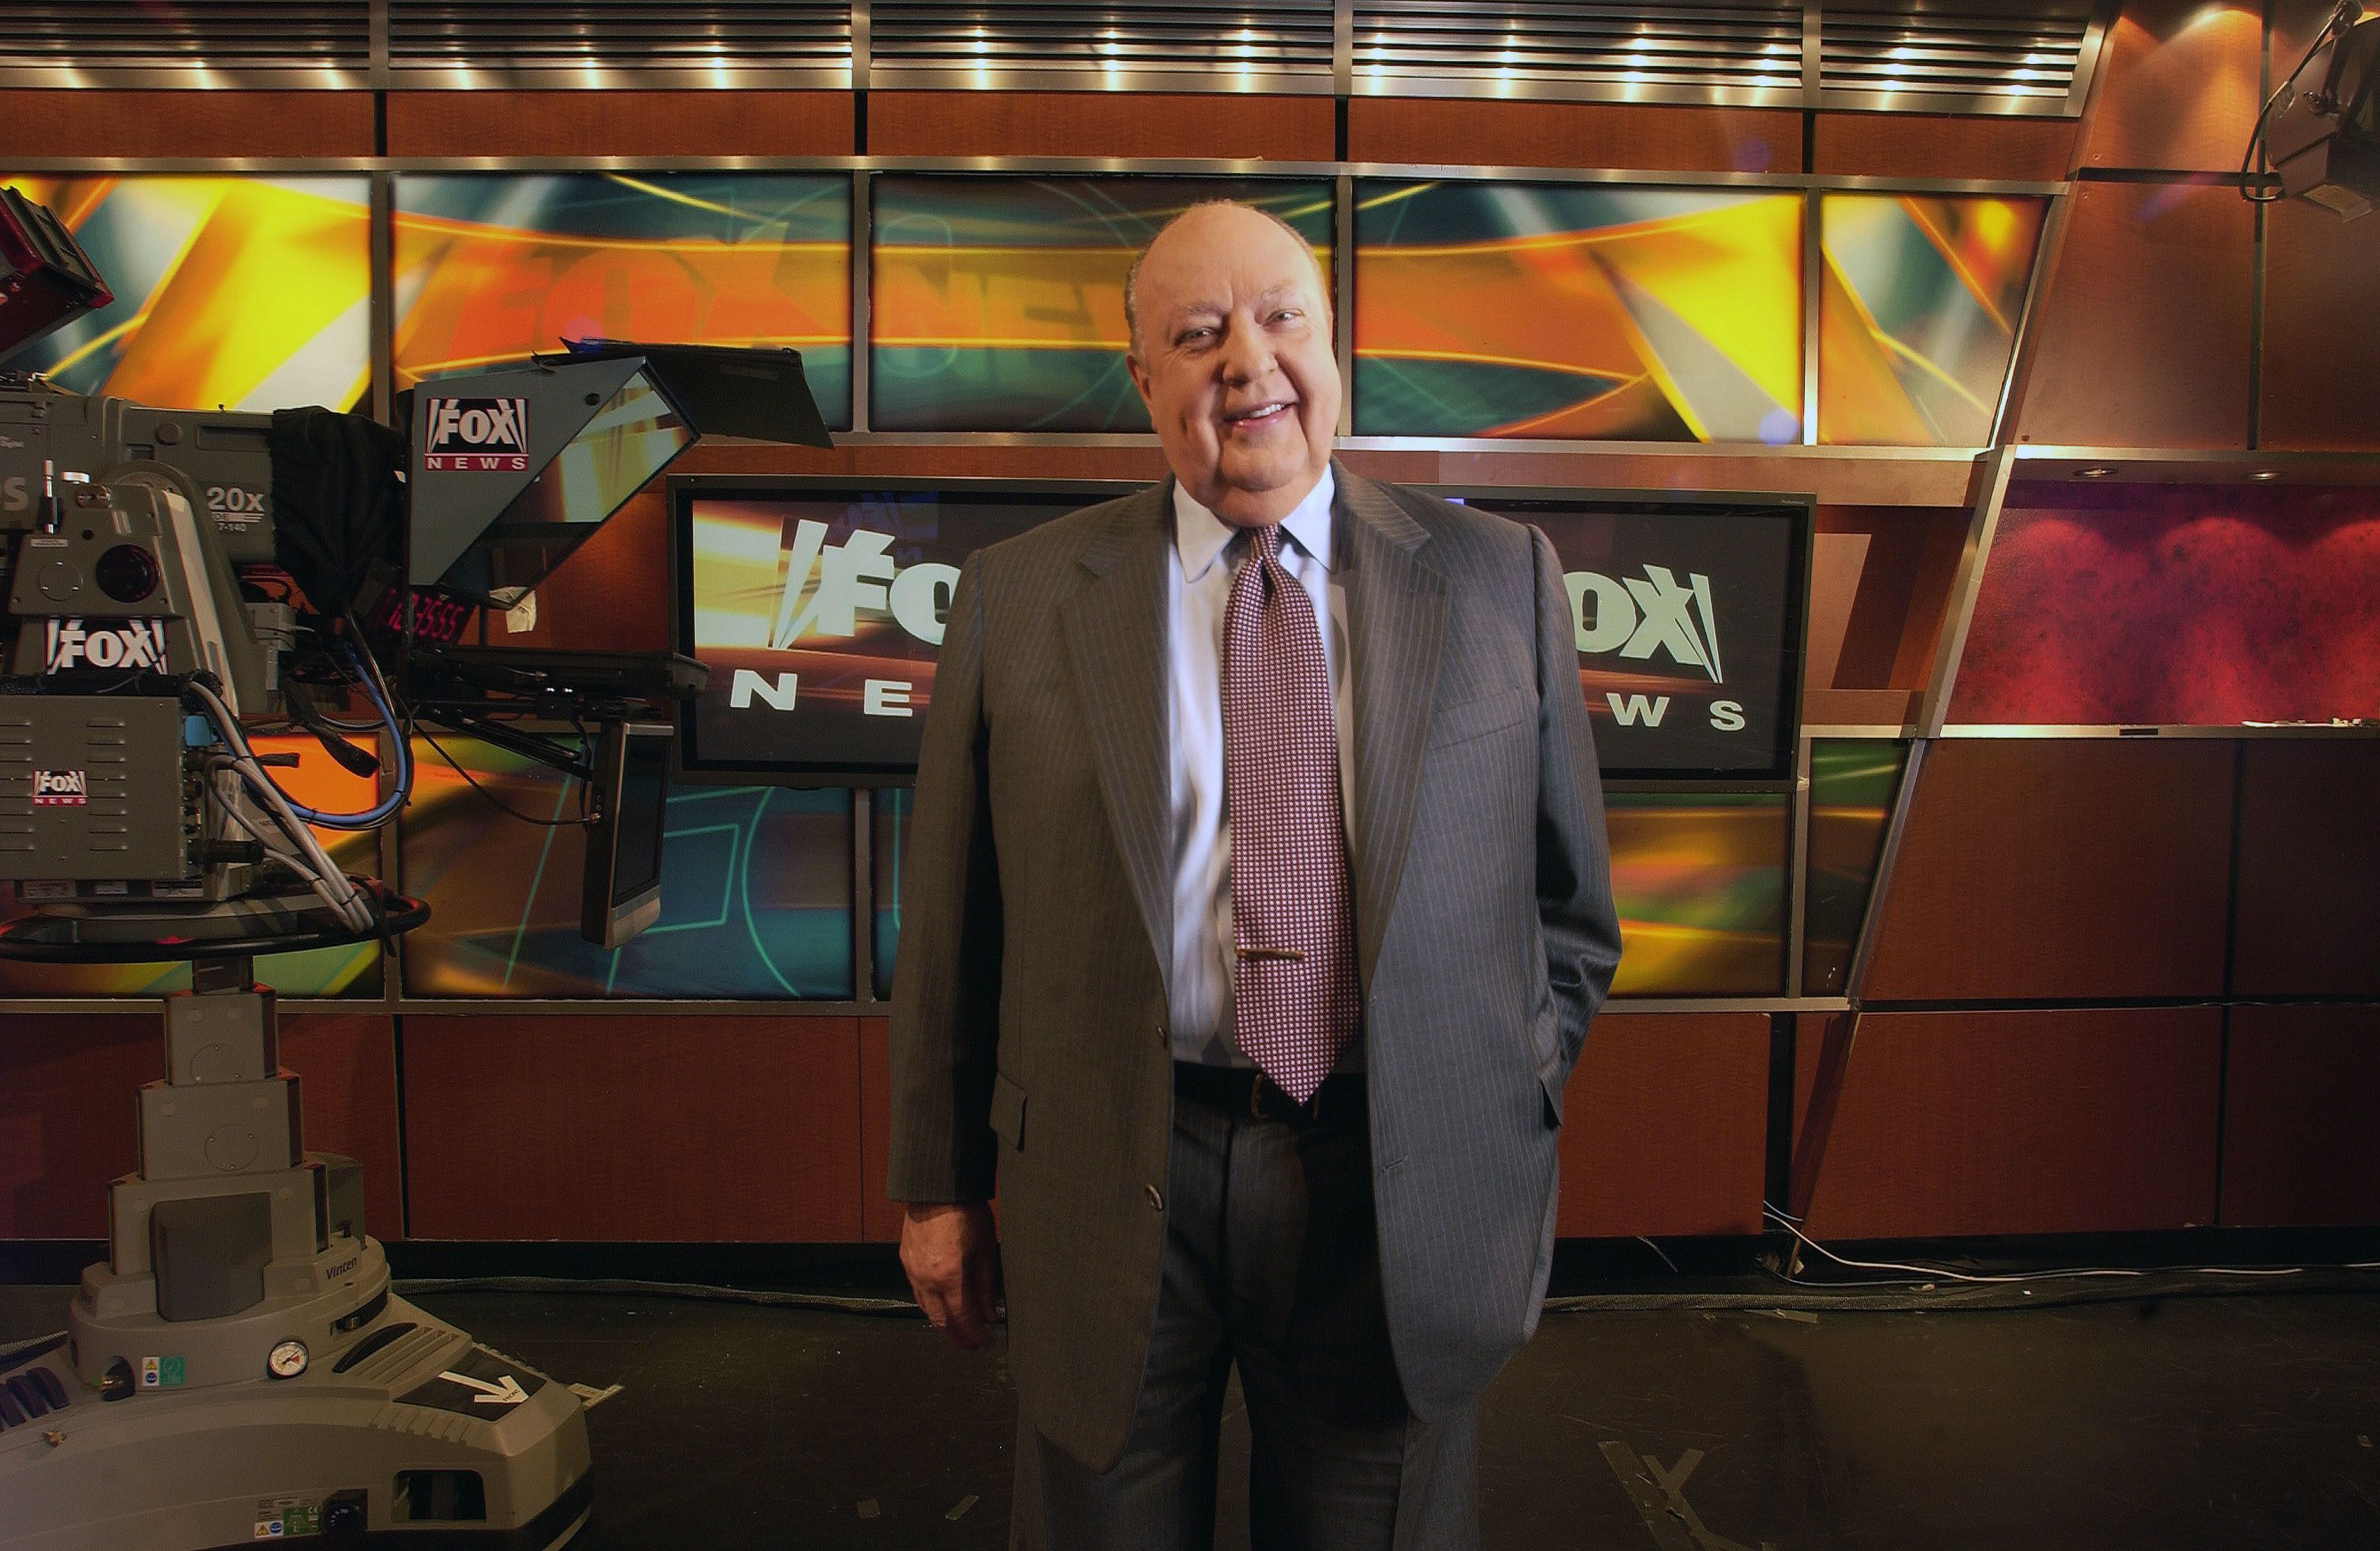 Roger Ailes Fox News CEO Roger Ailes poses at Fox News studio in New York. At age 76, Ailes has been vanquished from Fox News Channel, which he masterminded almost 20 years ago and had lorded over ever since. Little more than two weeks ago, a lawsuit filed by former Fox News host Gretchen Carlson charged him with sexual harassment. He denied her allegations, and those from other past and present female co-workers who spoke up after her. But with blistering speed his reign endedTV-Fox-Ailes-Analysis, New York, USA